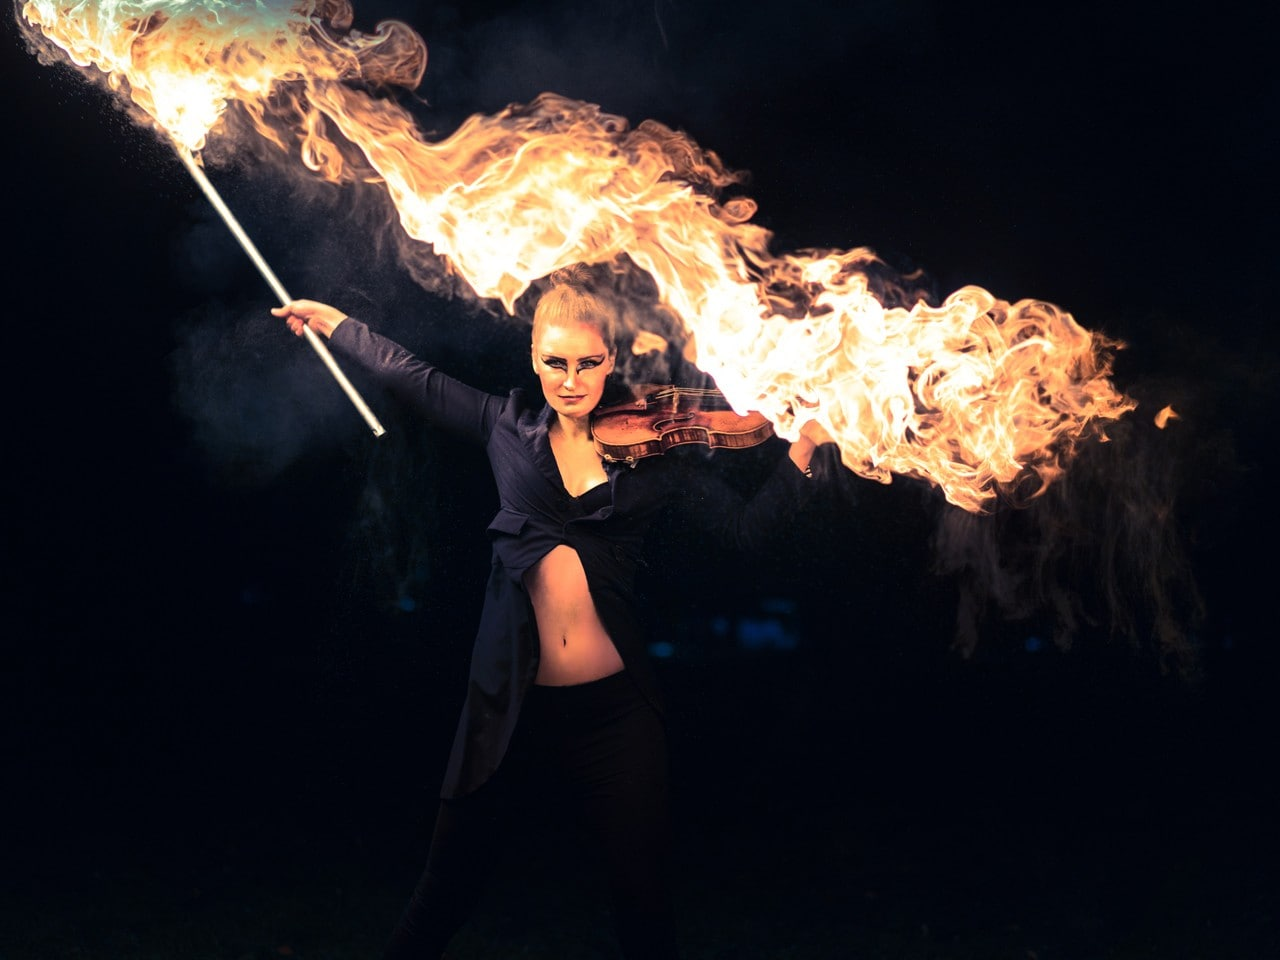 Female performing with violin and fire